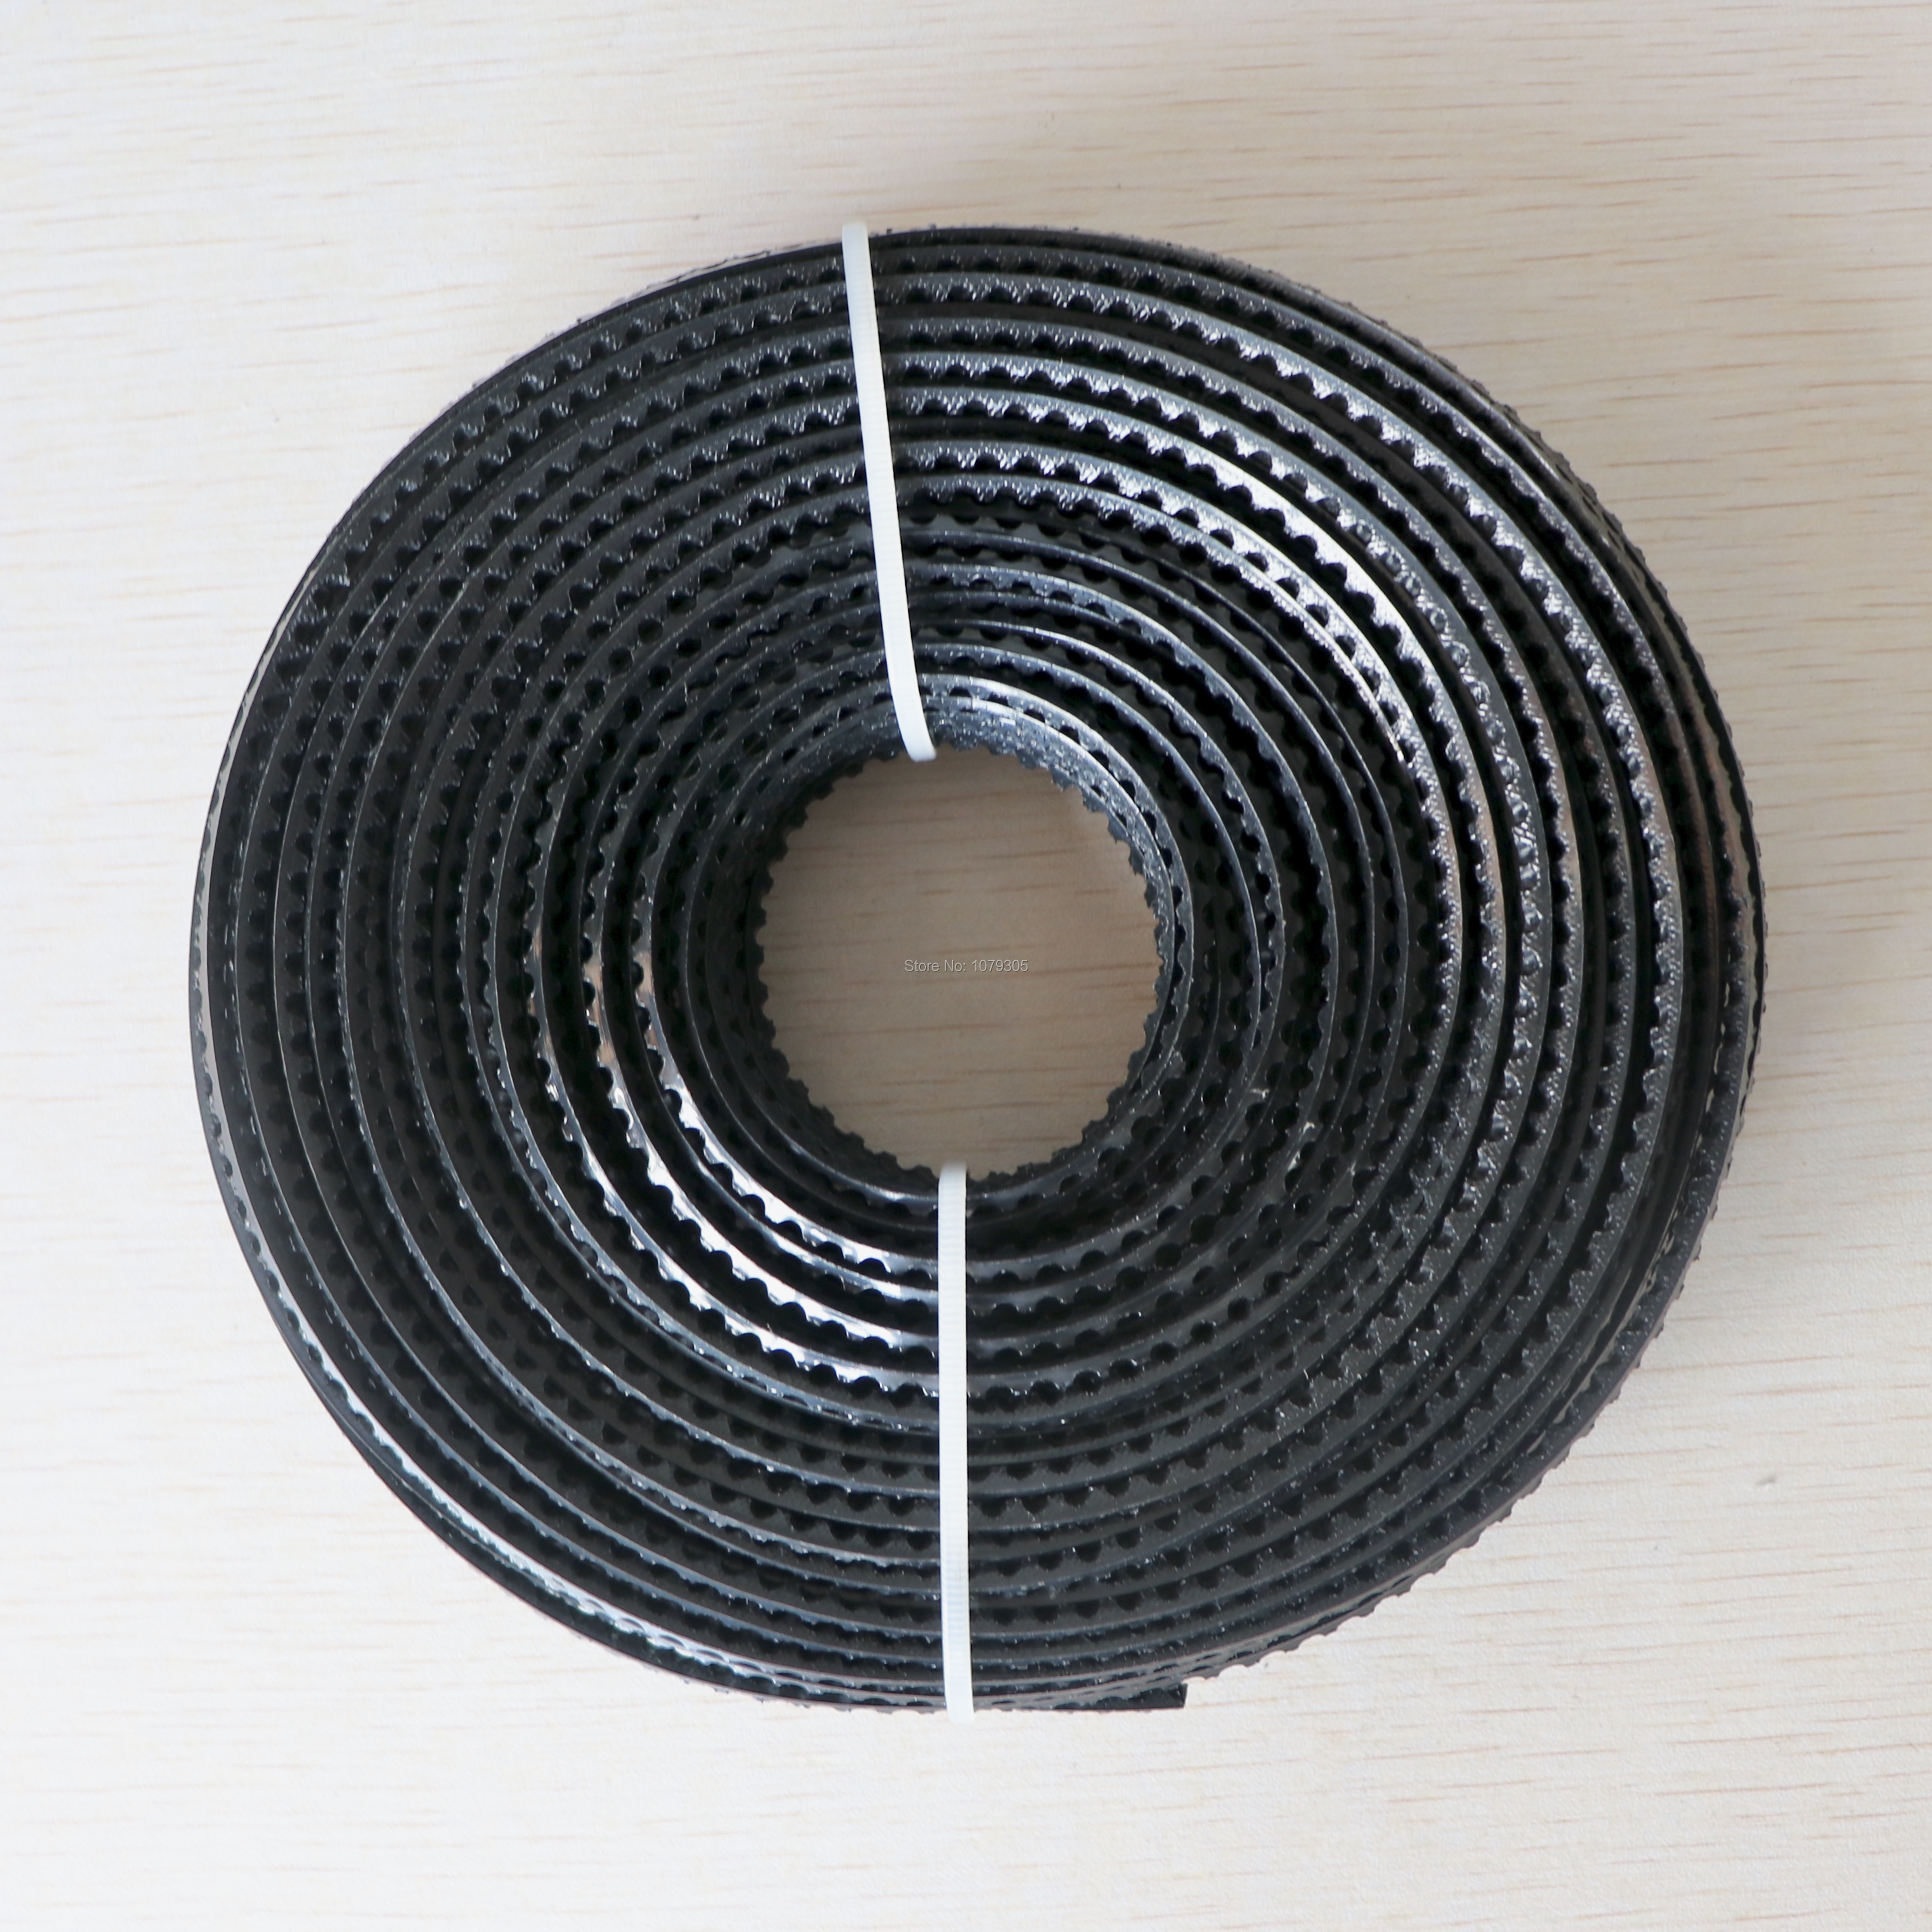 3.0MM 450G Super Quality Zigzag Trimmer Line Toothing String Trimmer Line For Weed Cutter Brush Cutter